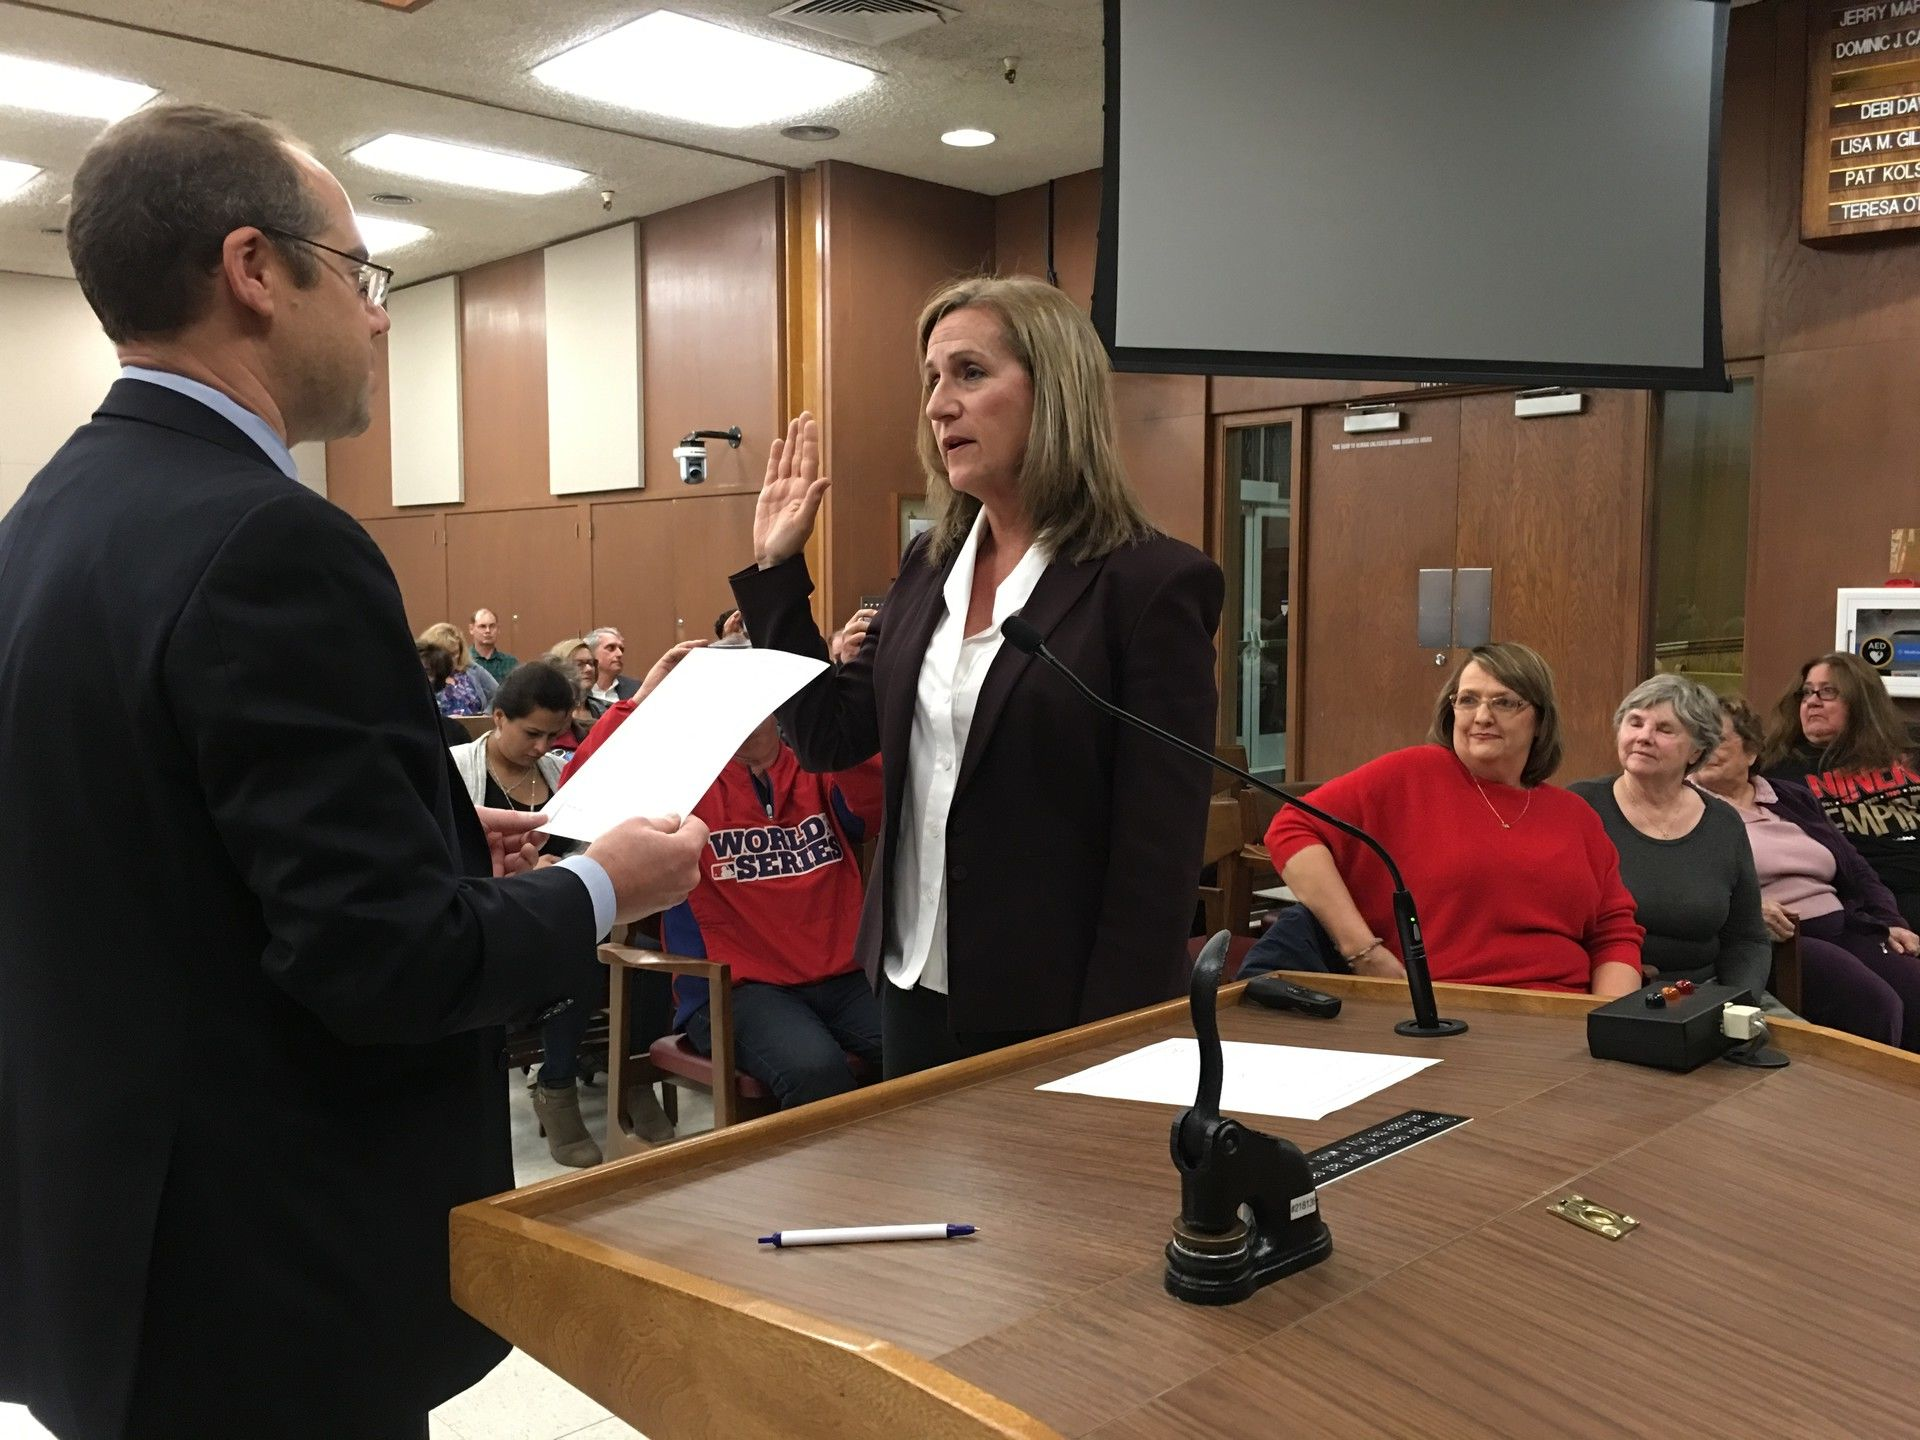 Lisa Gillmor gets sworn into office as Santa Clara's newly appointed Mayor.